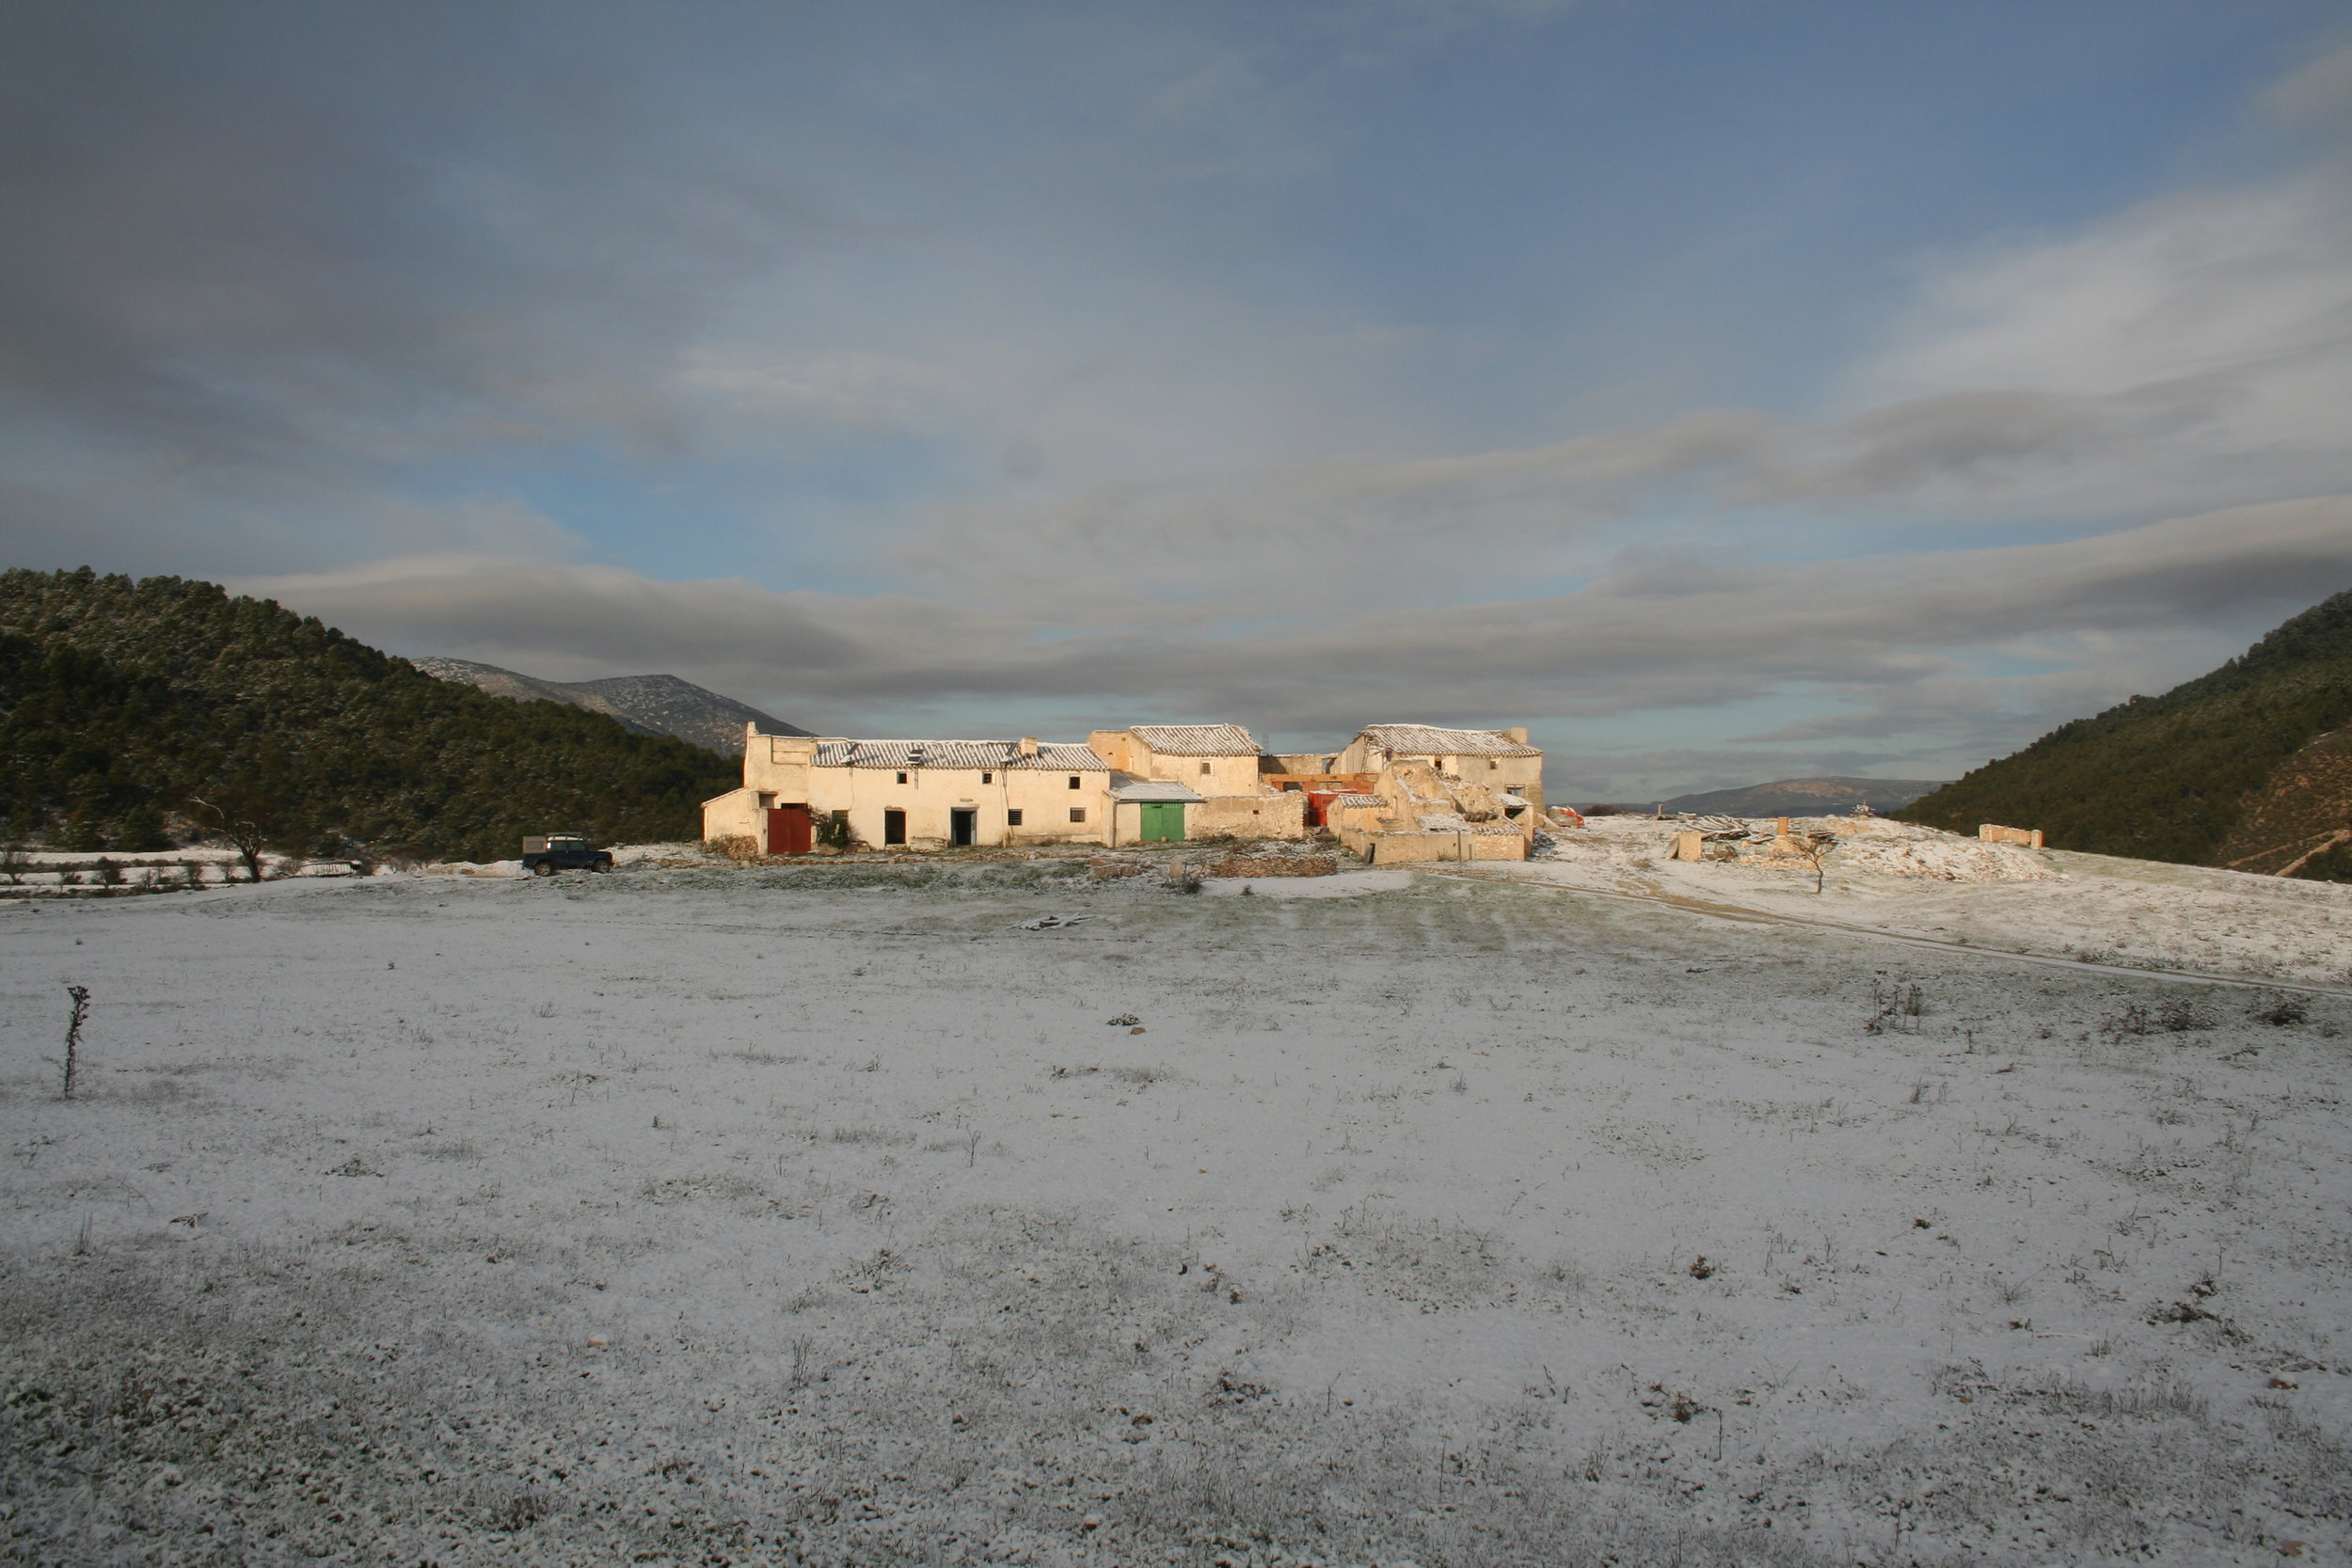 Los Gázquez, winter 2009, in a state of ruin.